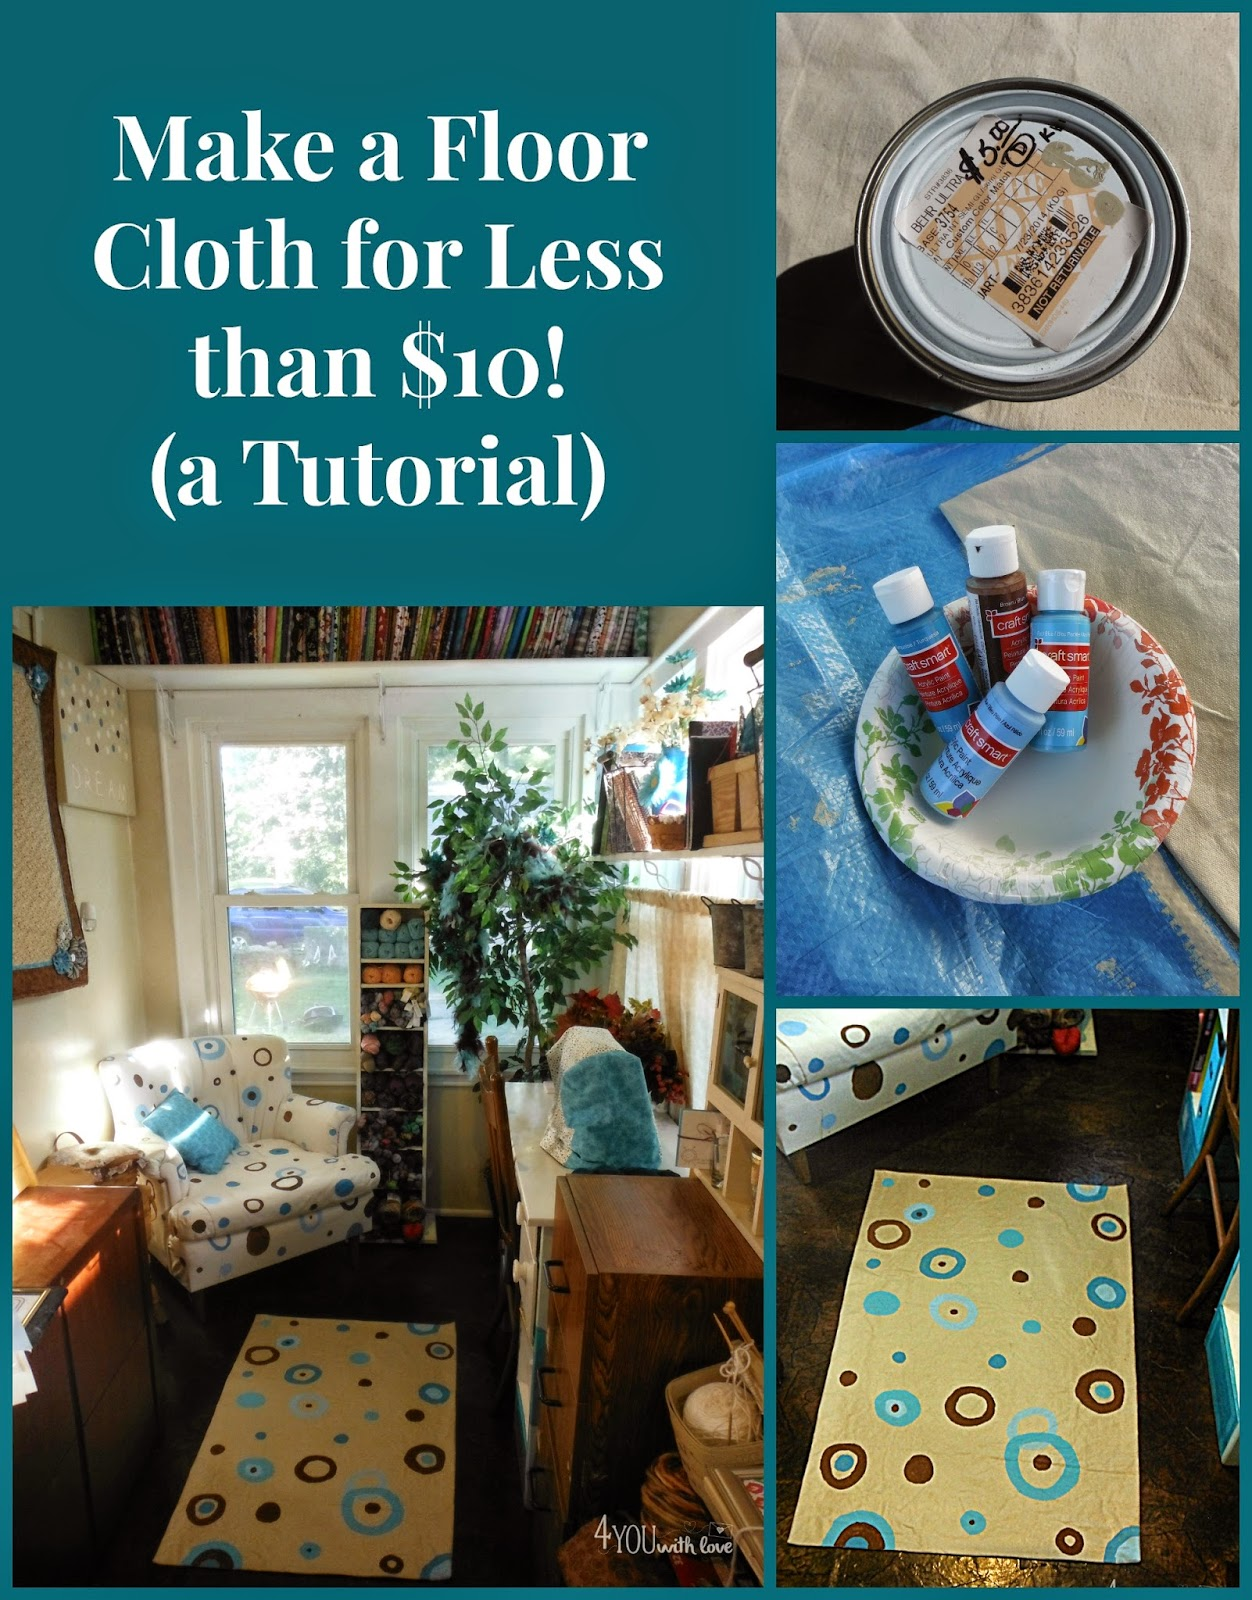 Make Your Own Floor Cloth (Tutorial)